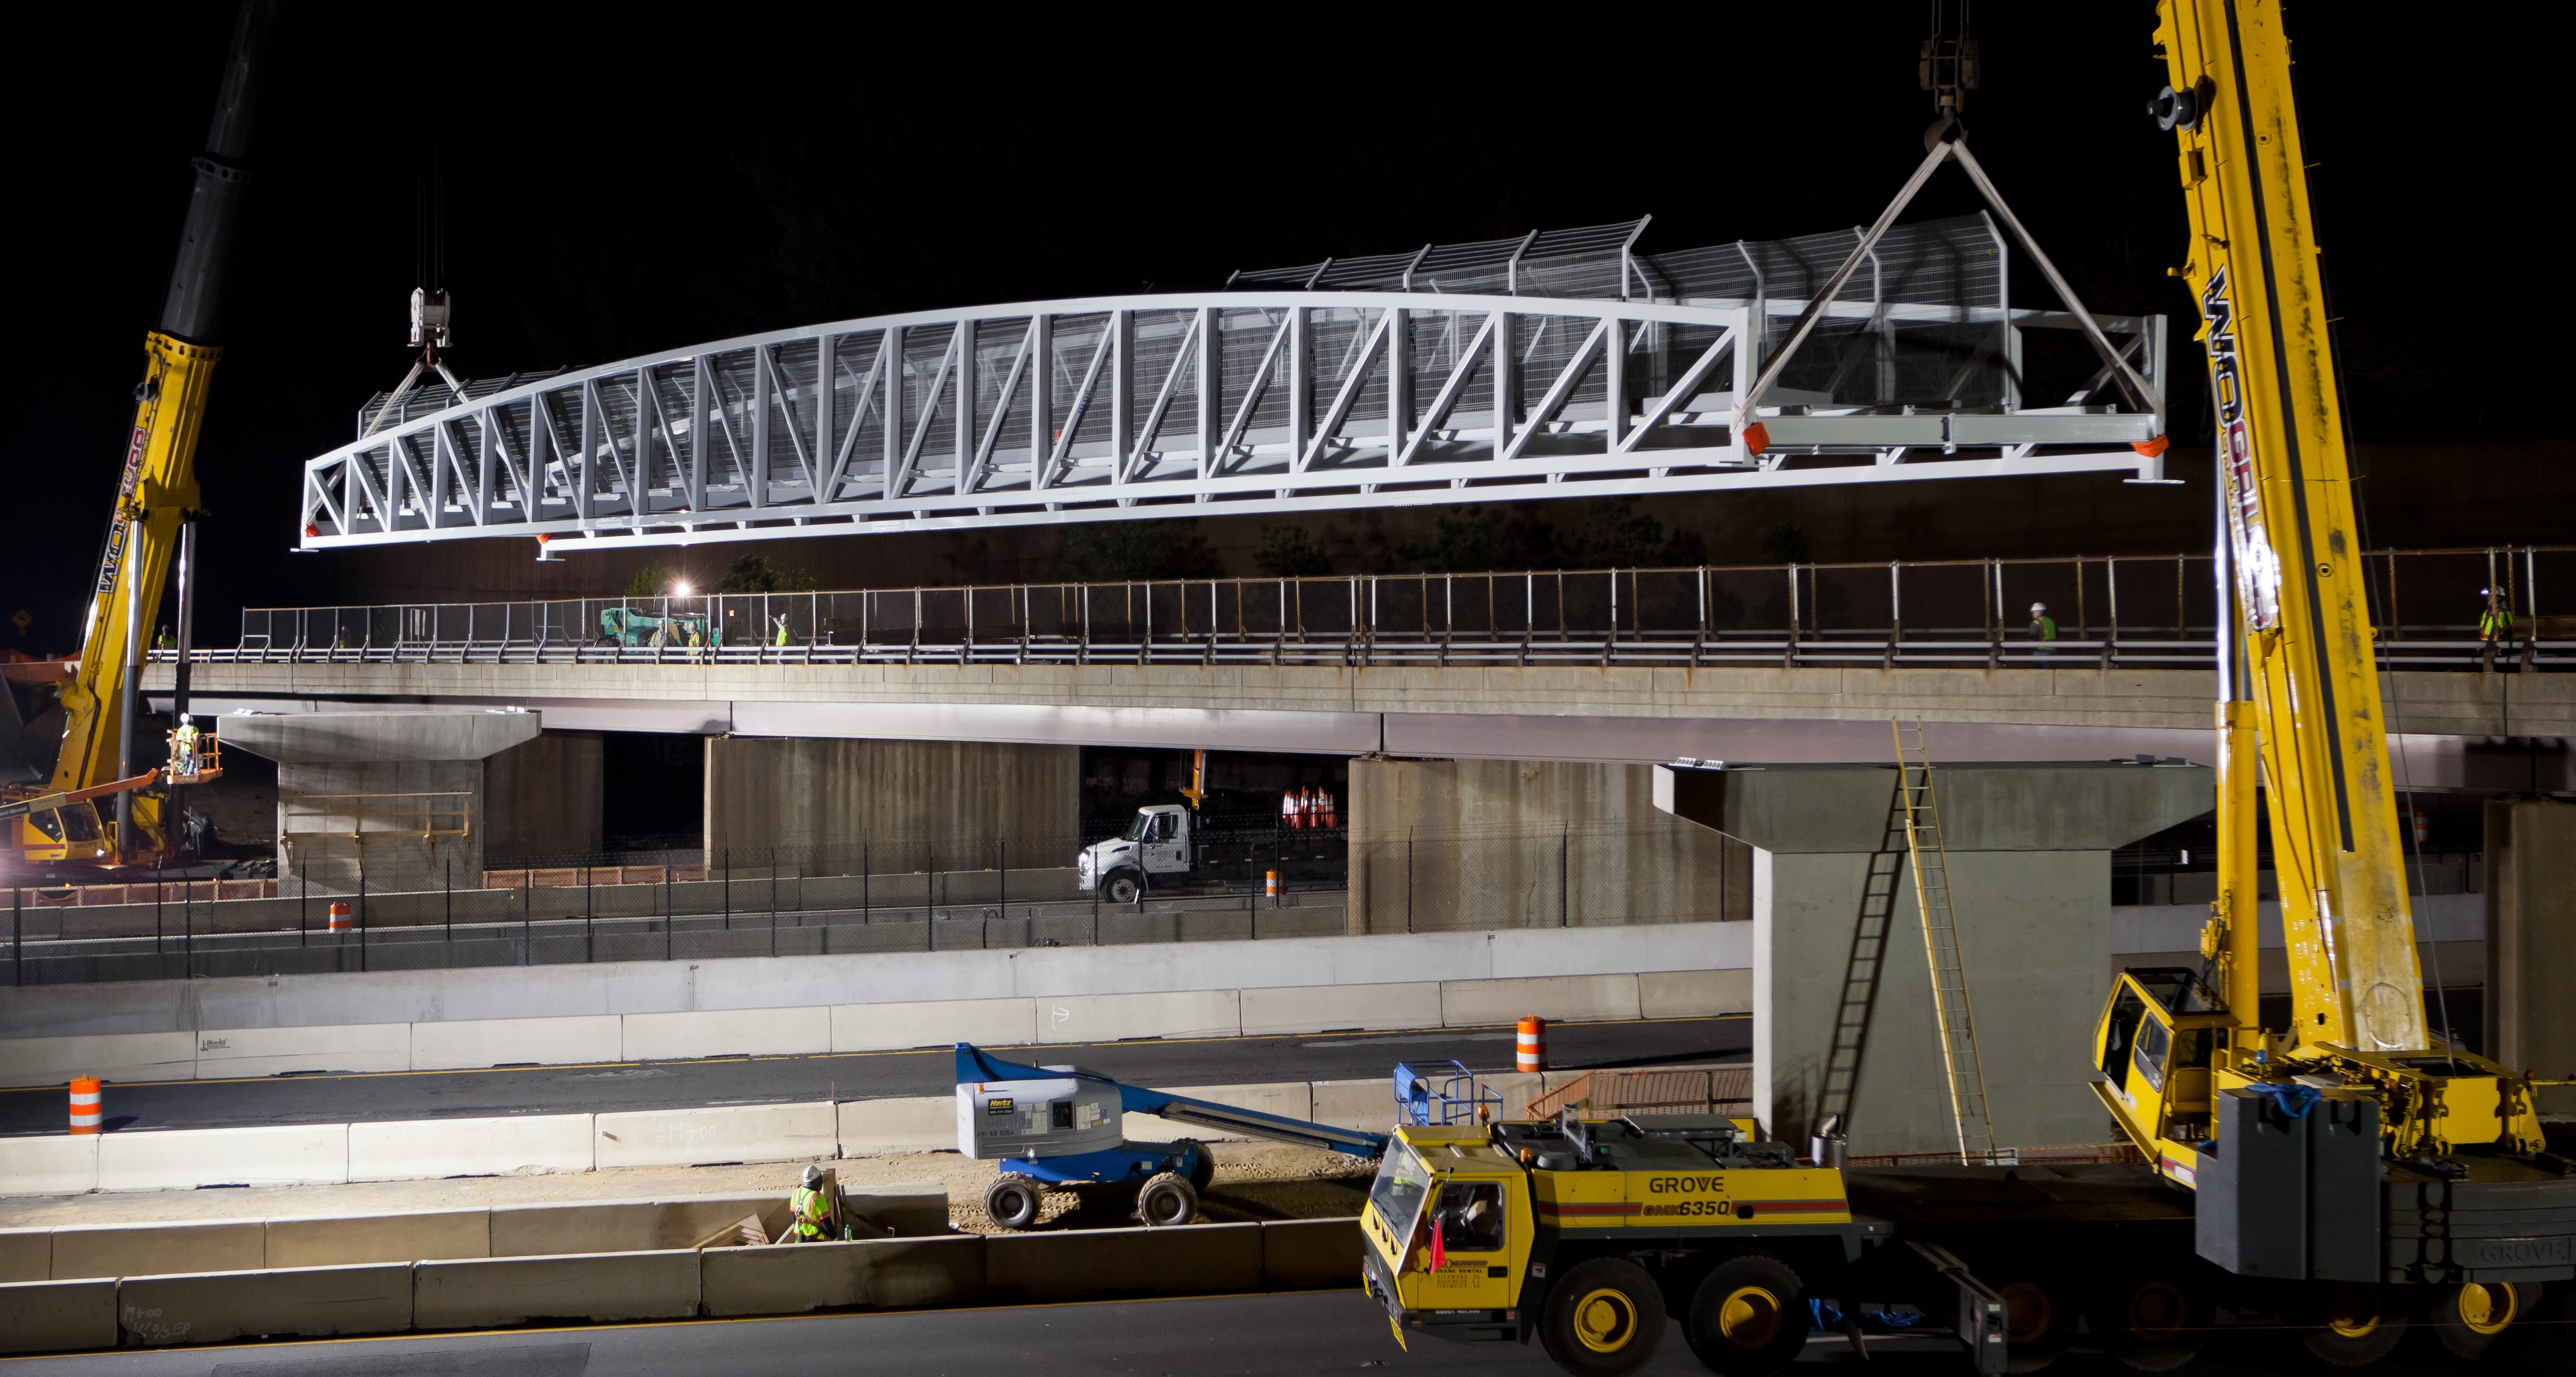 Fast Installation of Prefabricated FRP Structures in High Traffic Locations